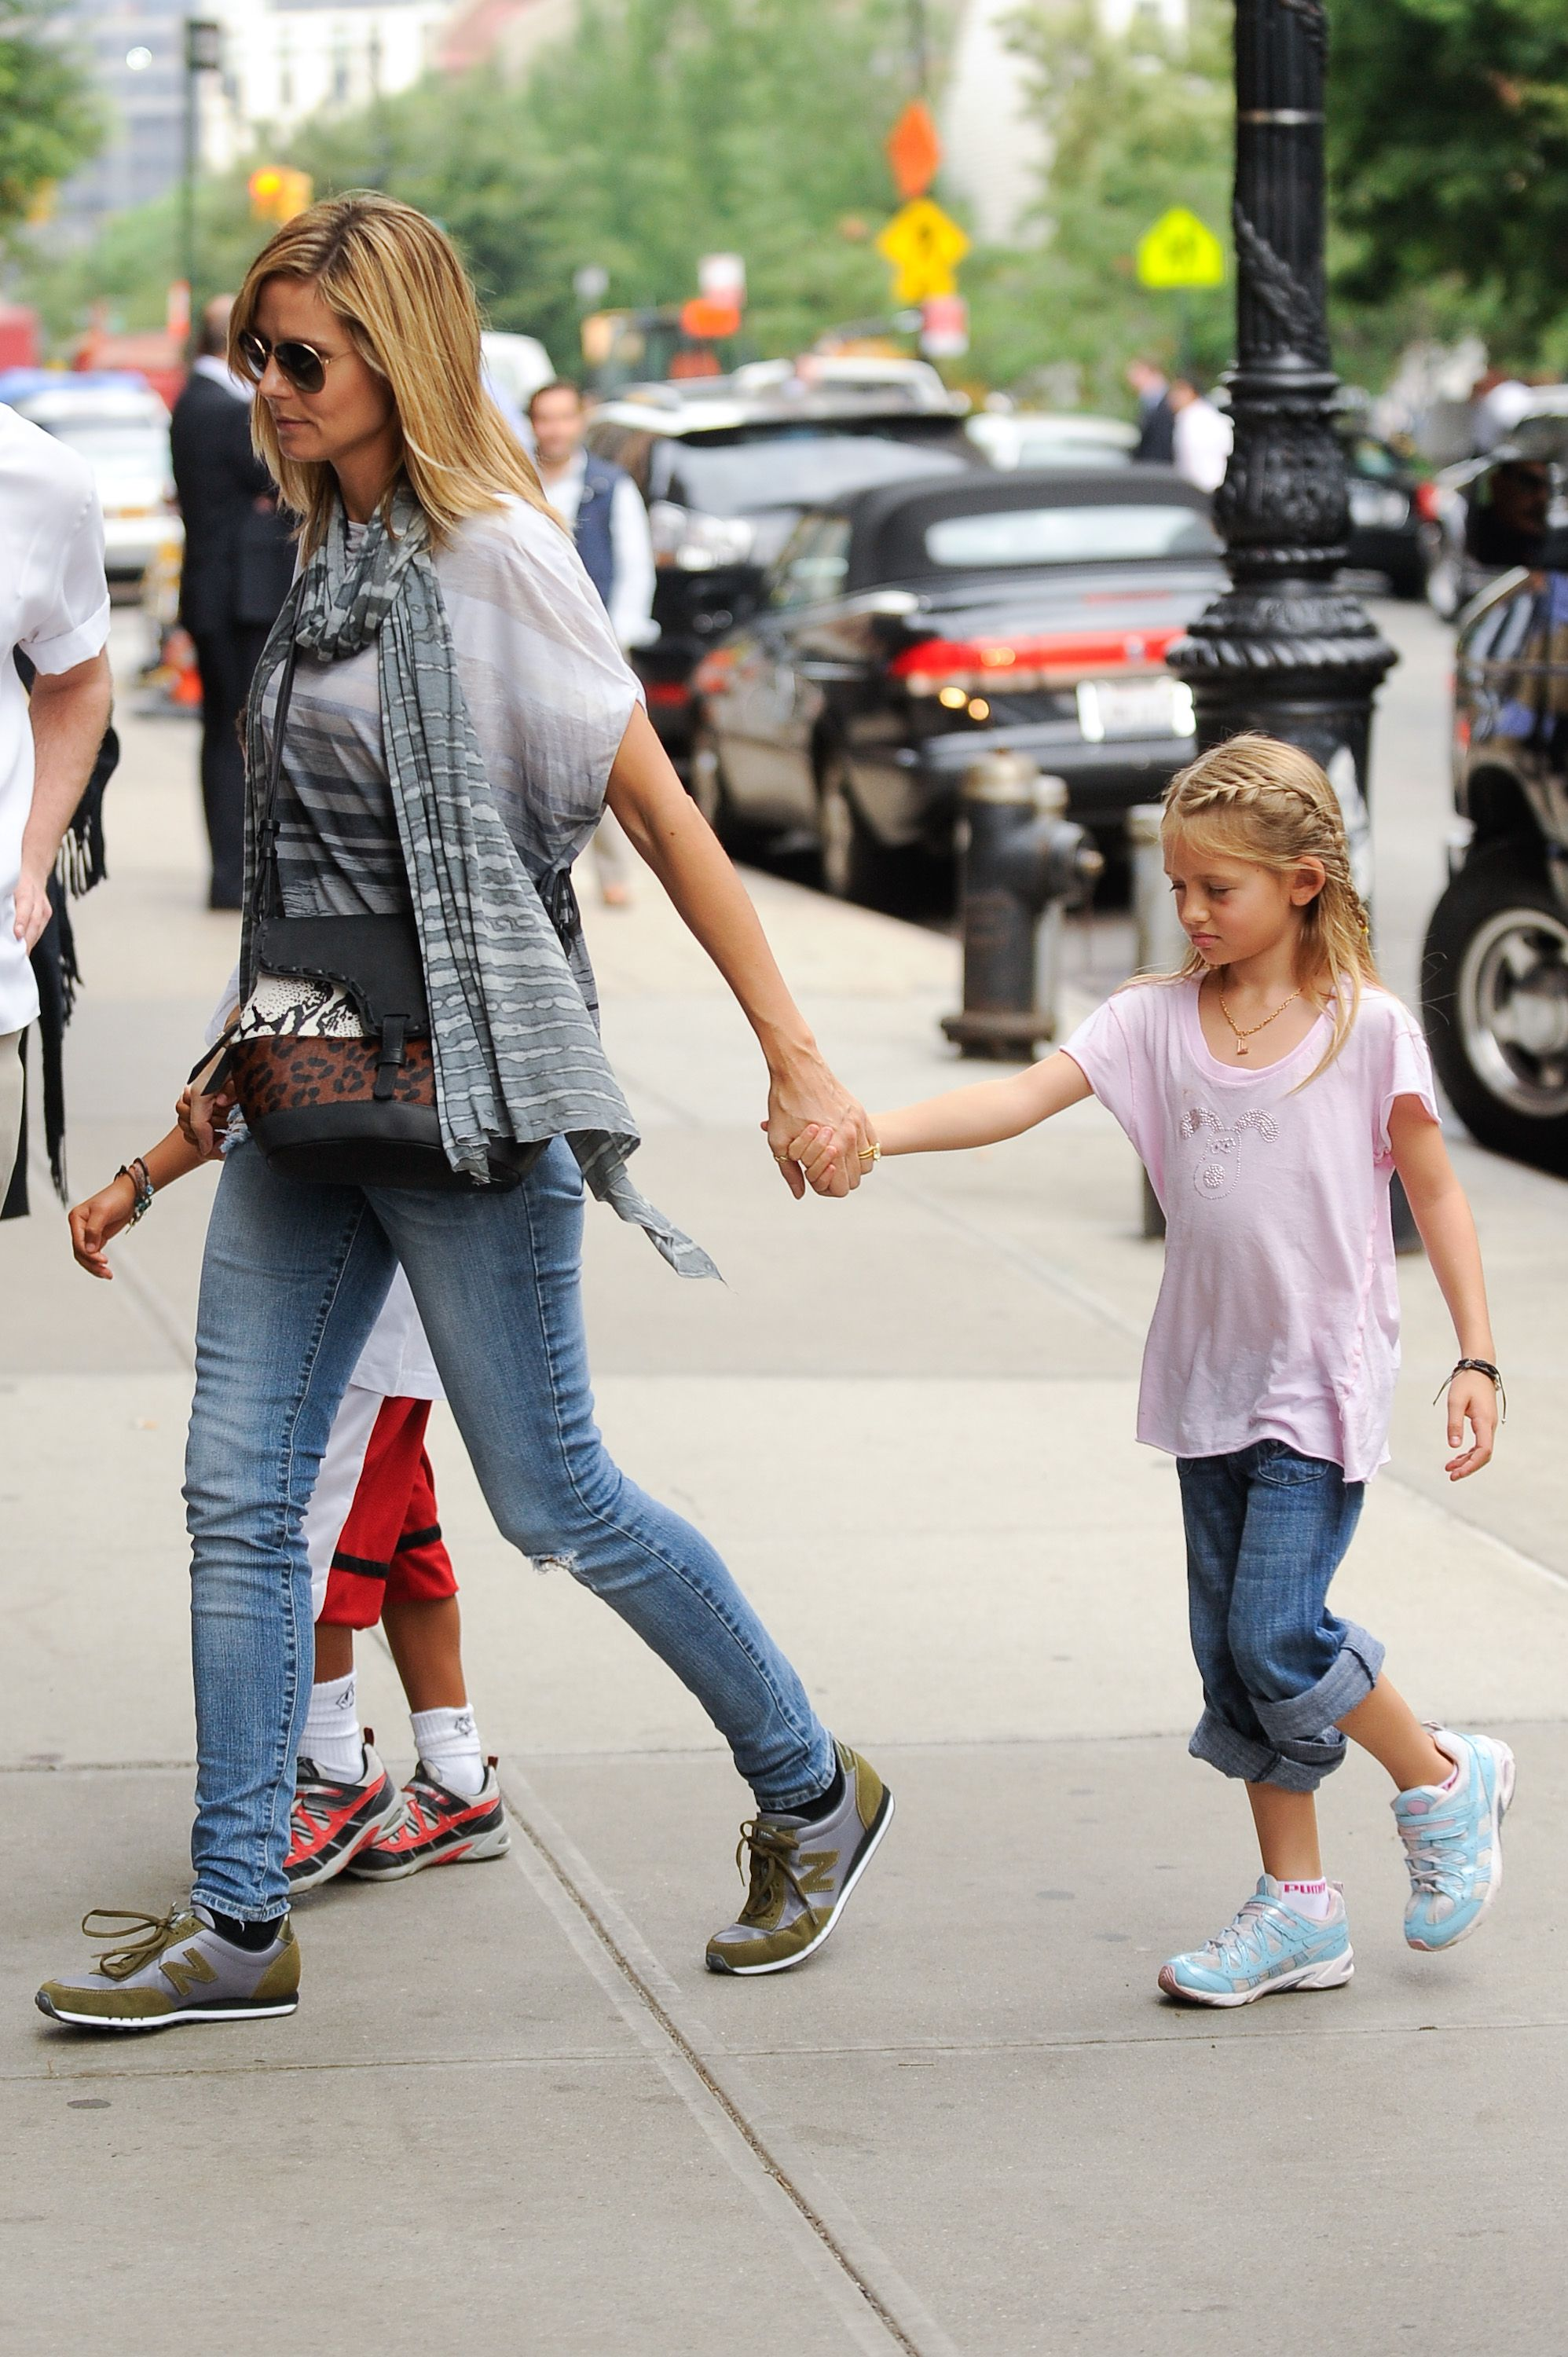 Heidi Klum and her daughter Leni Samuel in New York City in June 2011 | Source: Getty Images